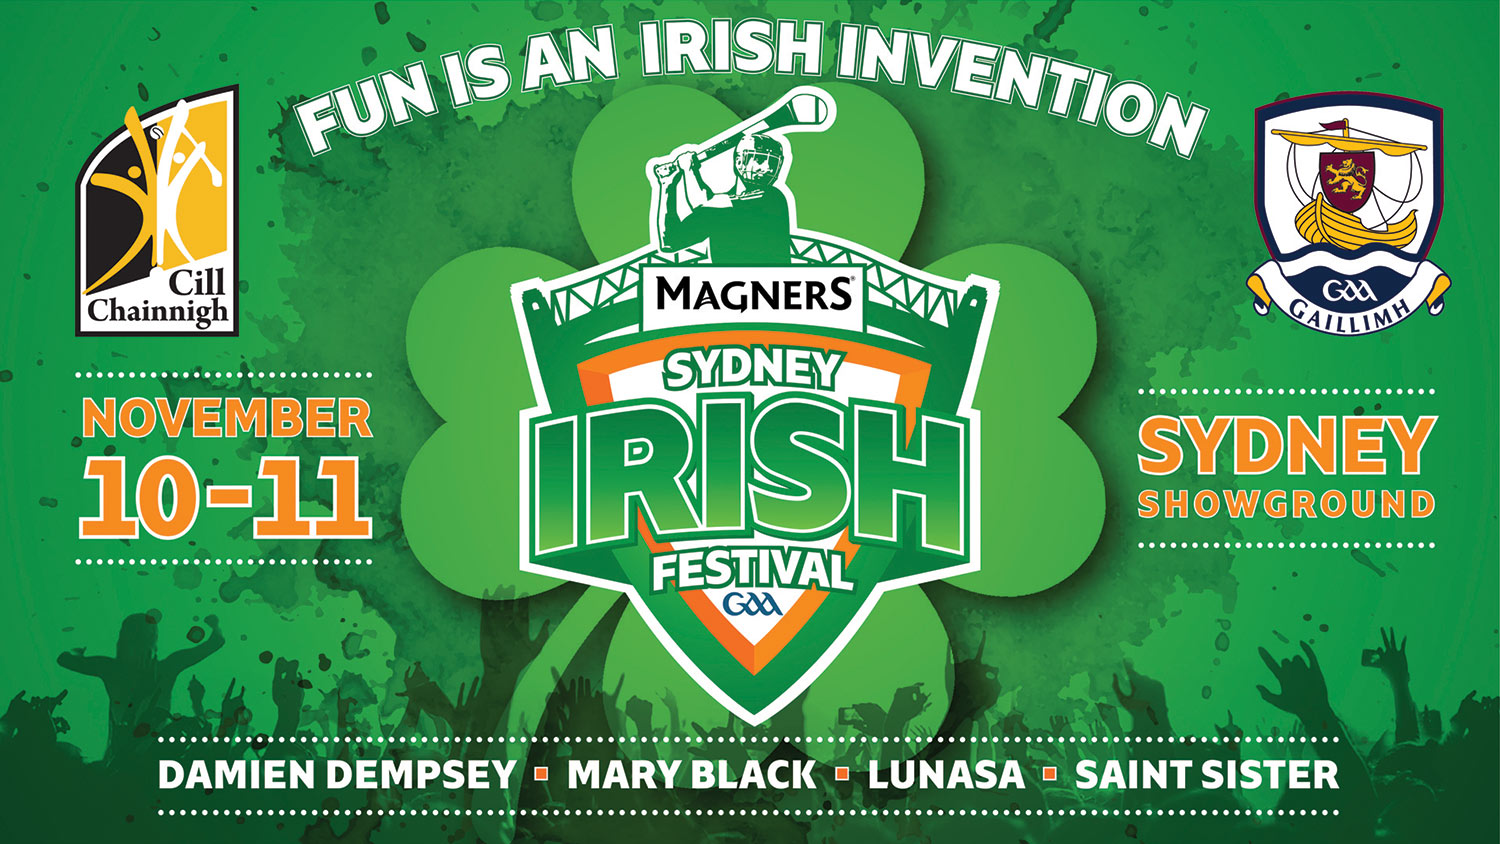 An ad for last November's Sydney irish Festival which ran into problems over poor ticket sales.